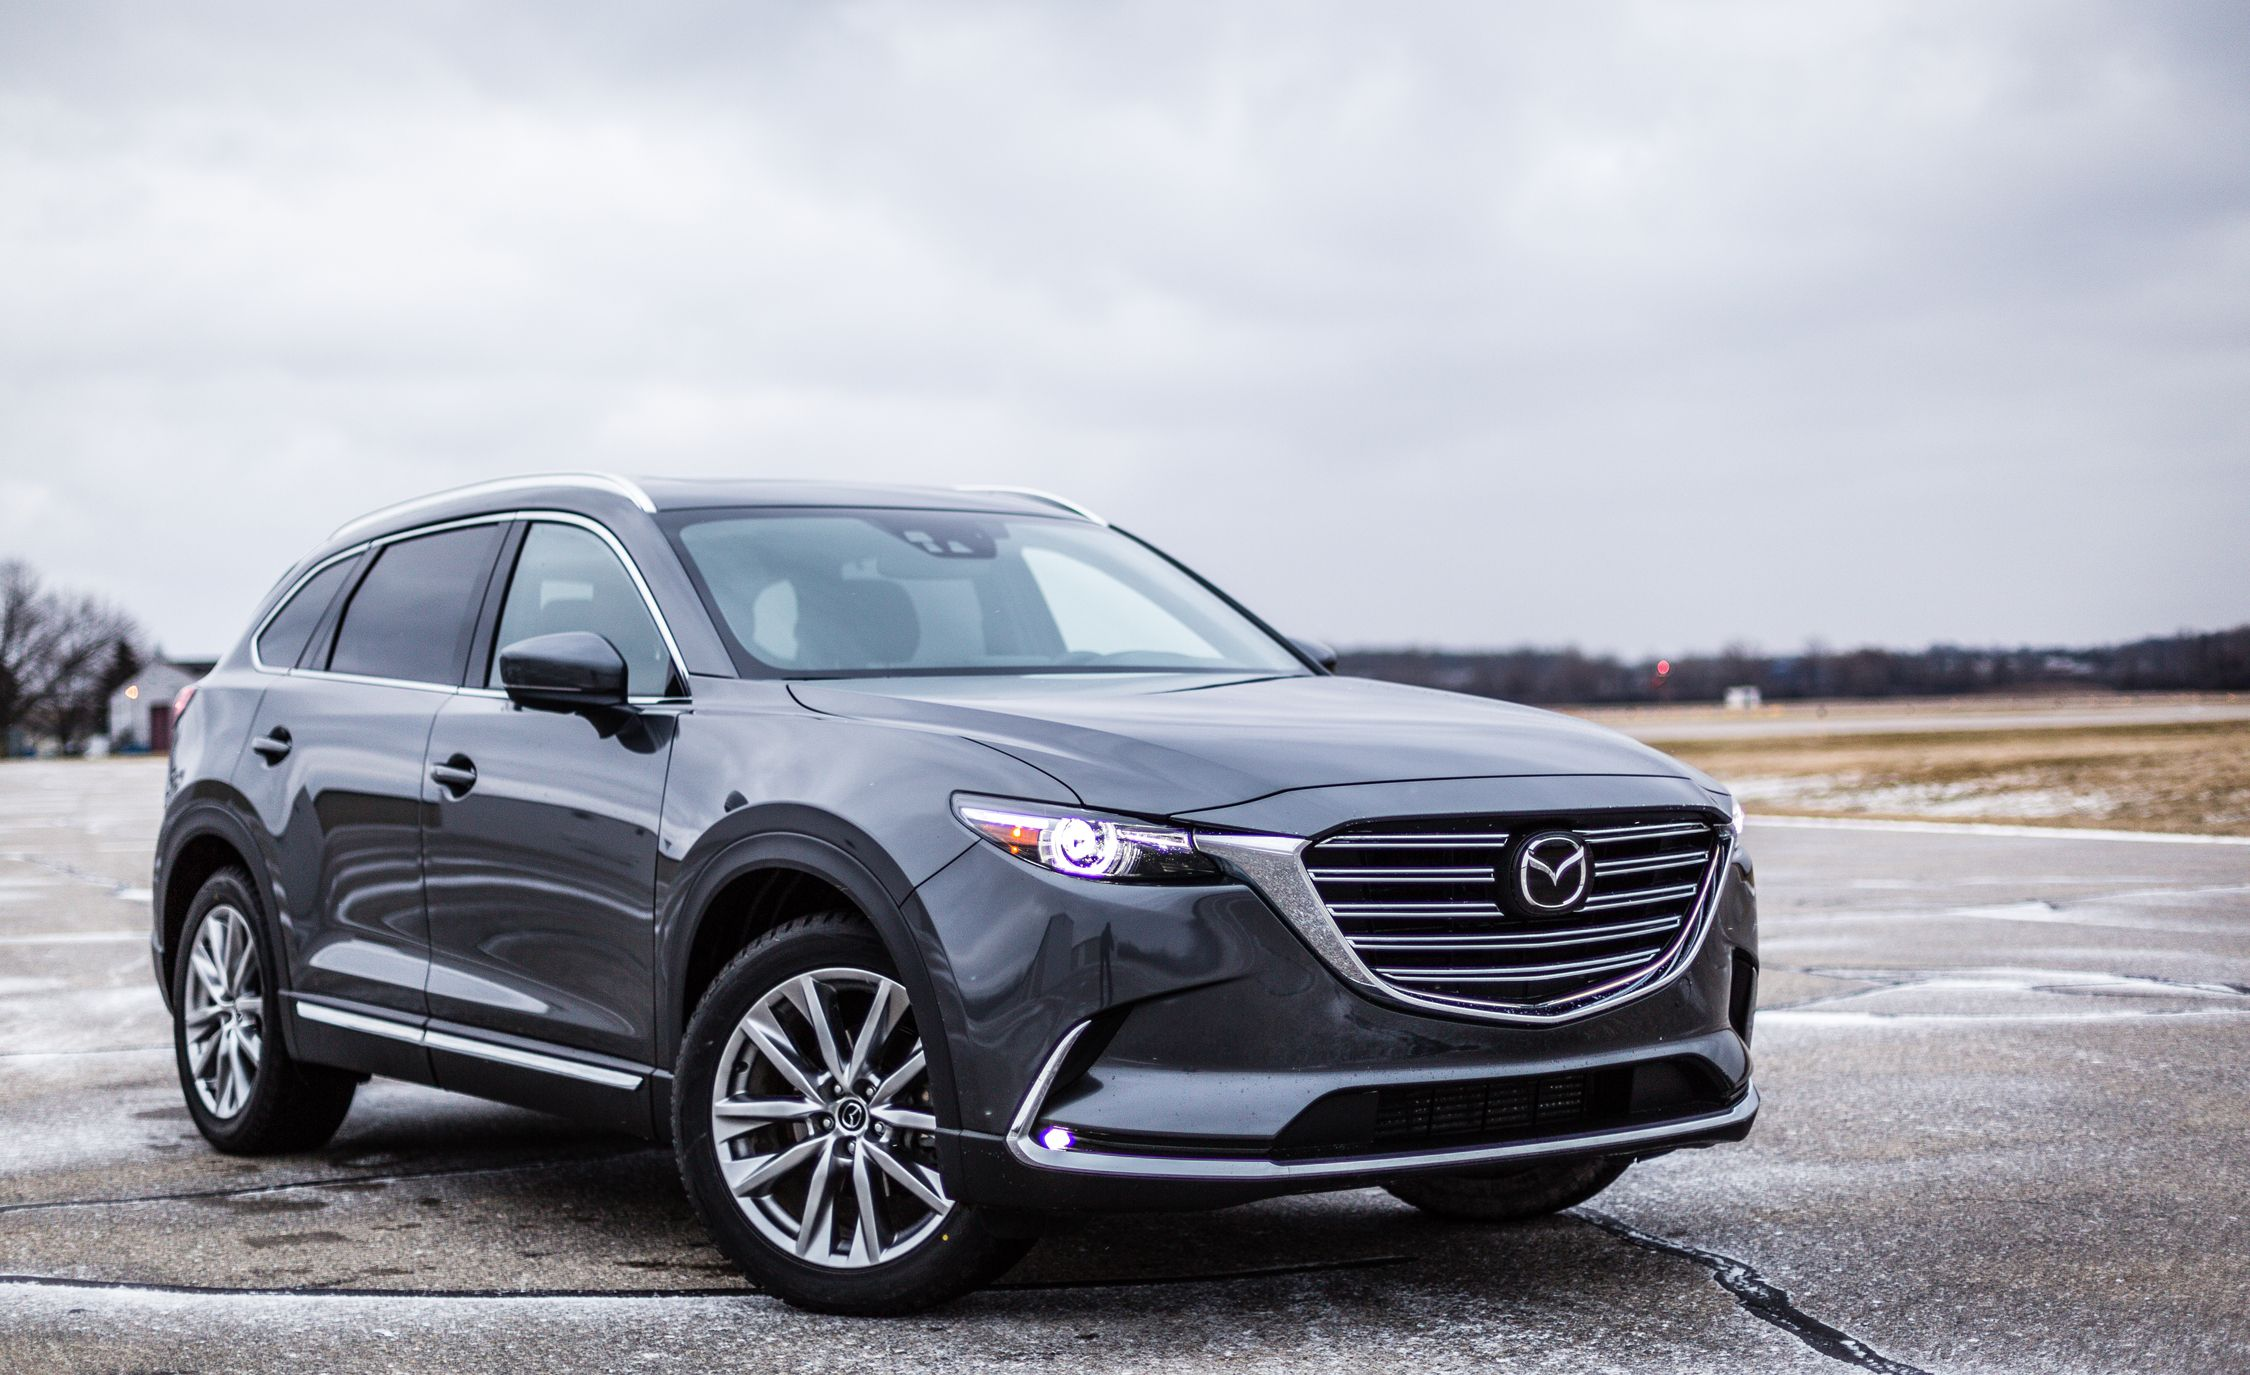 2017 Mazda CX-9 | In-Depth Model Review | Car and Driver